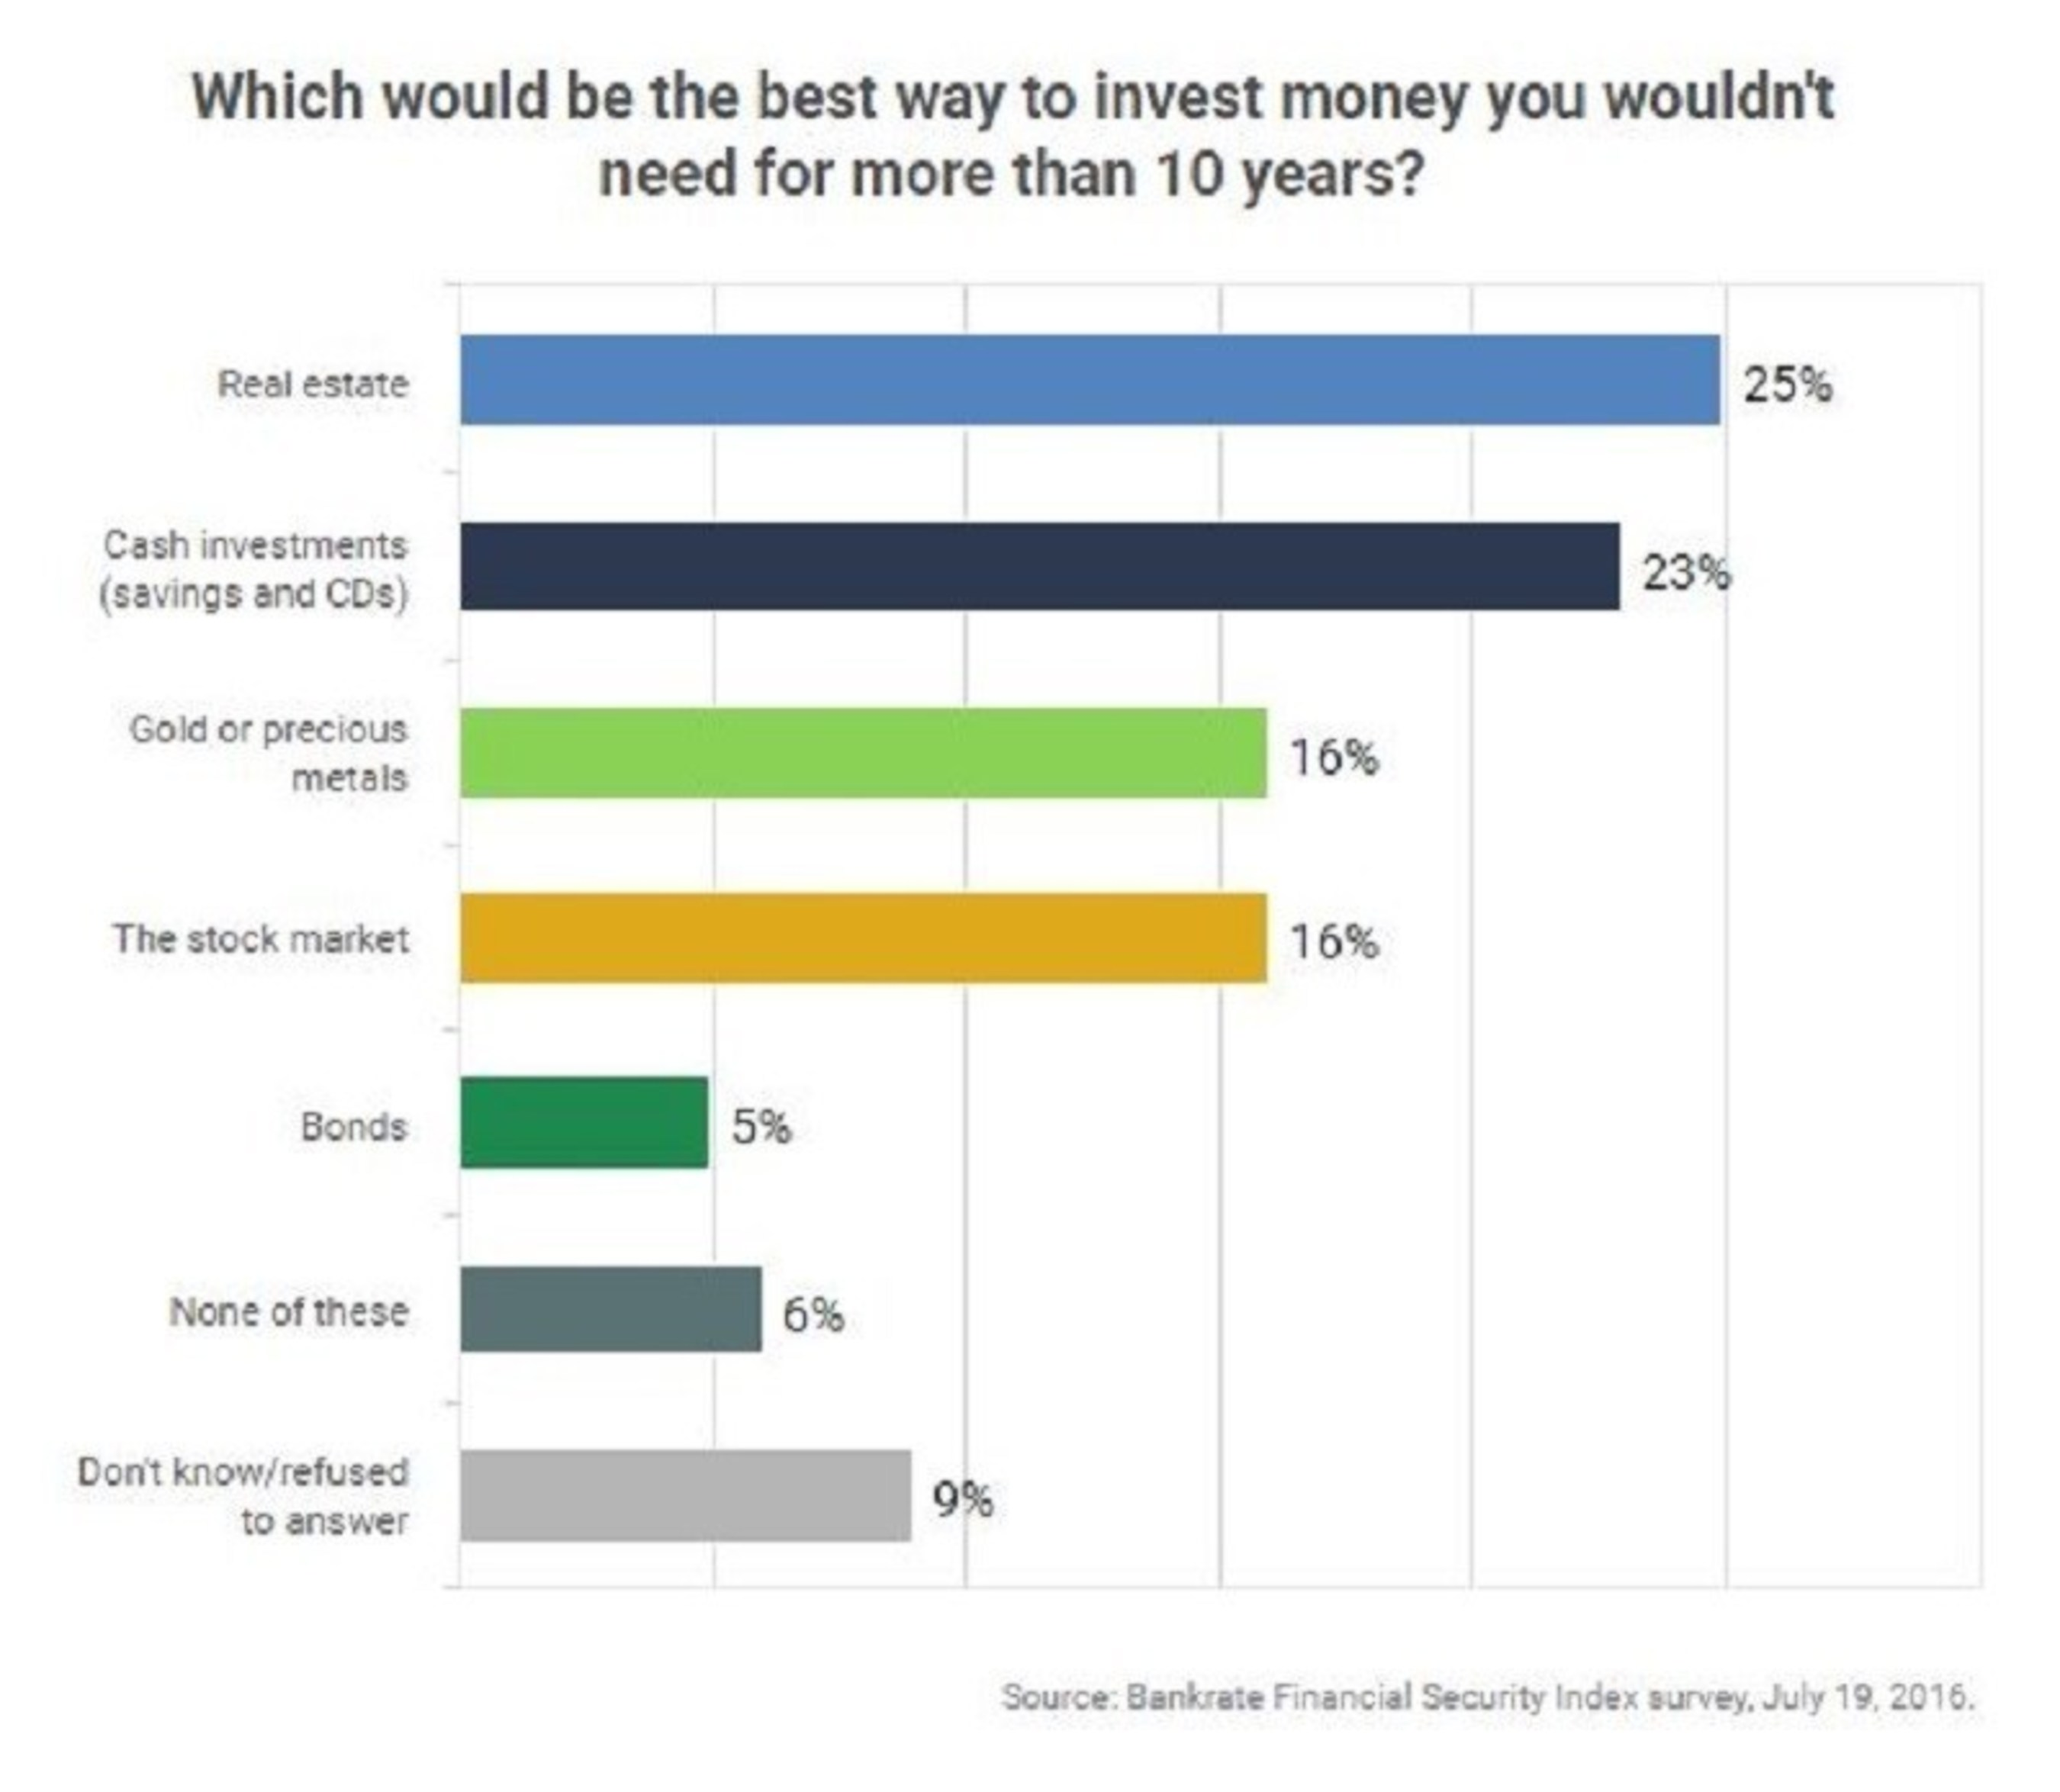 The most popular investment option for money not needed for more than a decade is real estate (25%), followed by cash (23%), stocks and precious metals tied at 16%. The least popular option are bonds (5%).